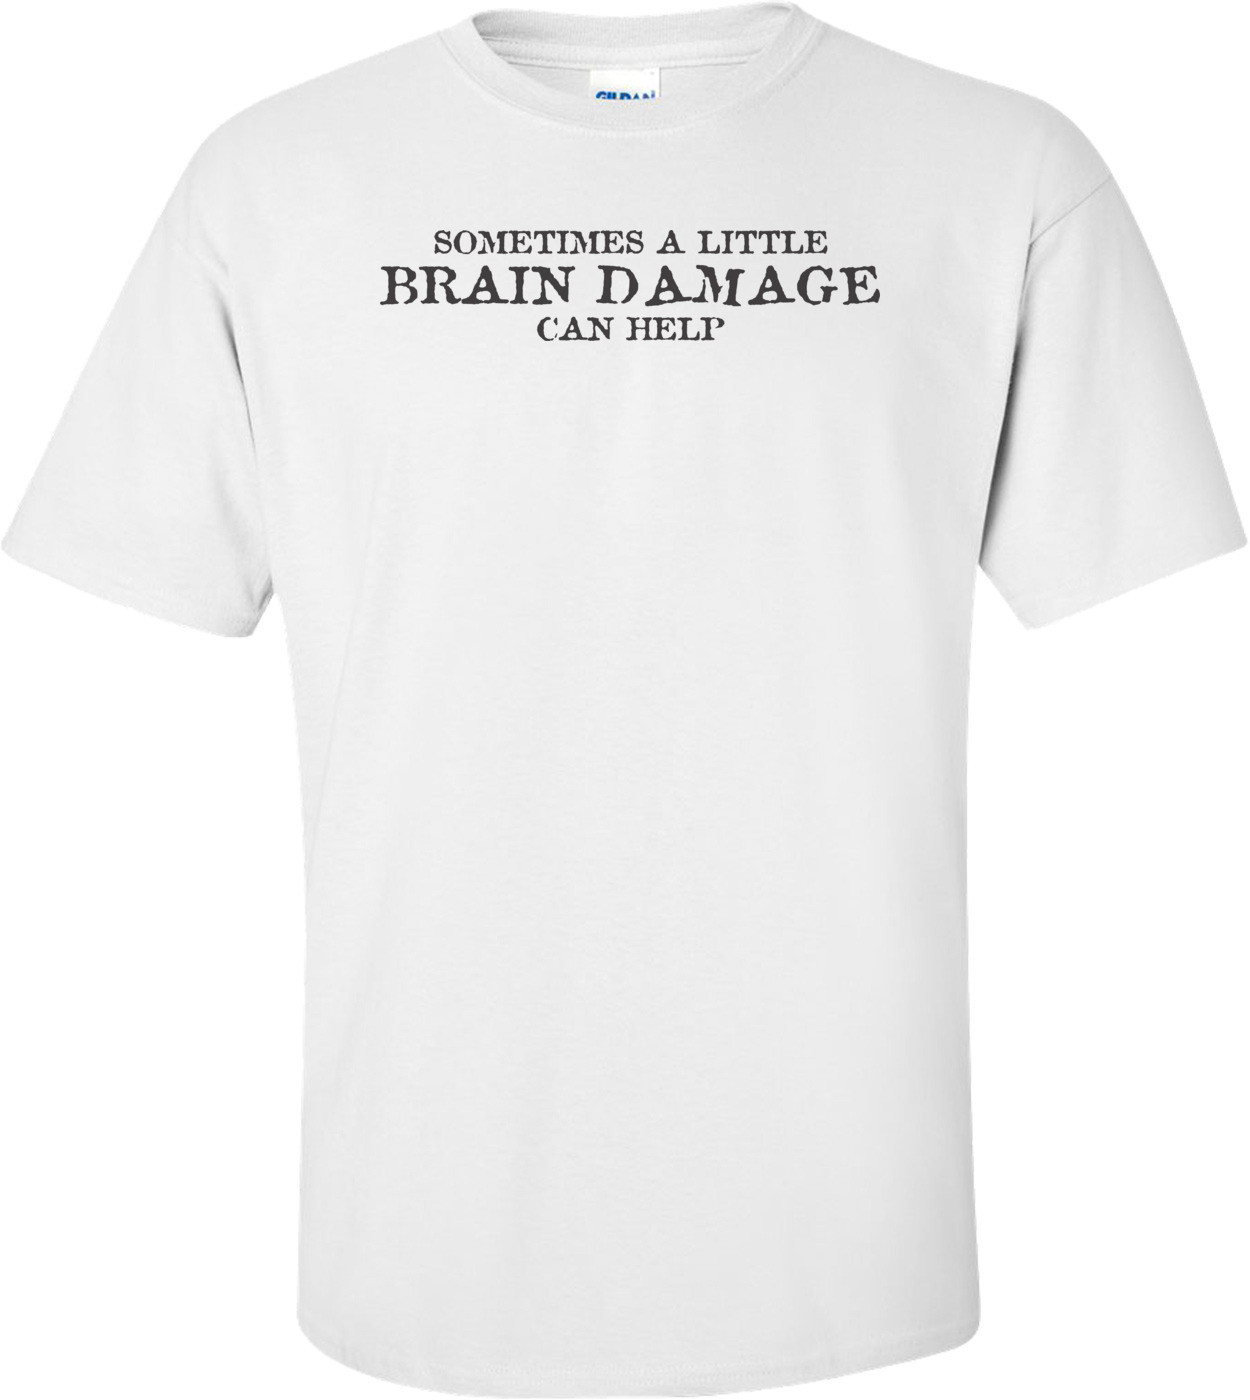 Sometimes A Little Brain Damage Can Help T-shirt